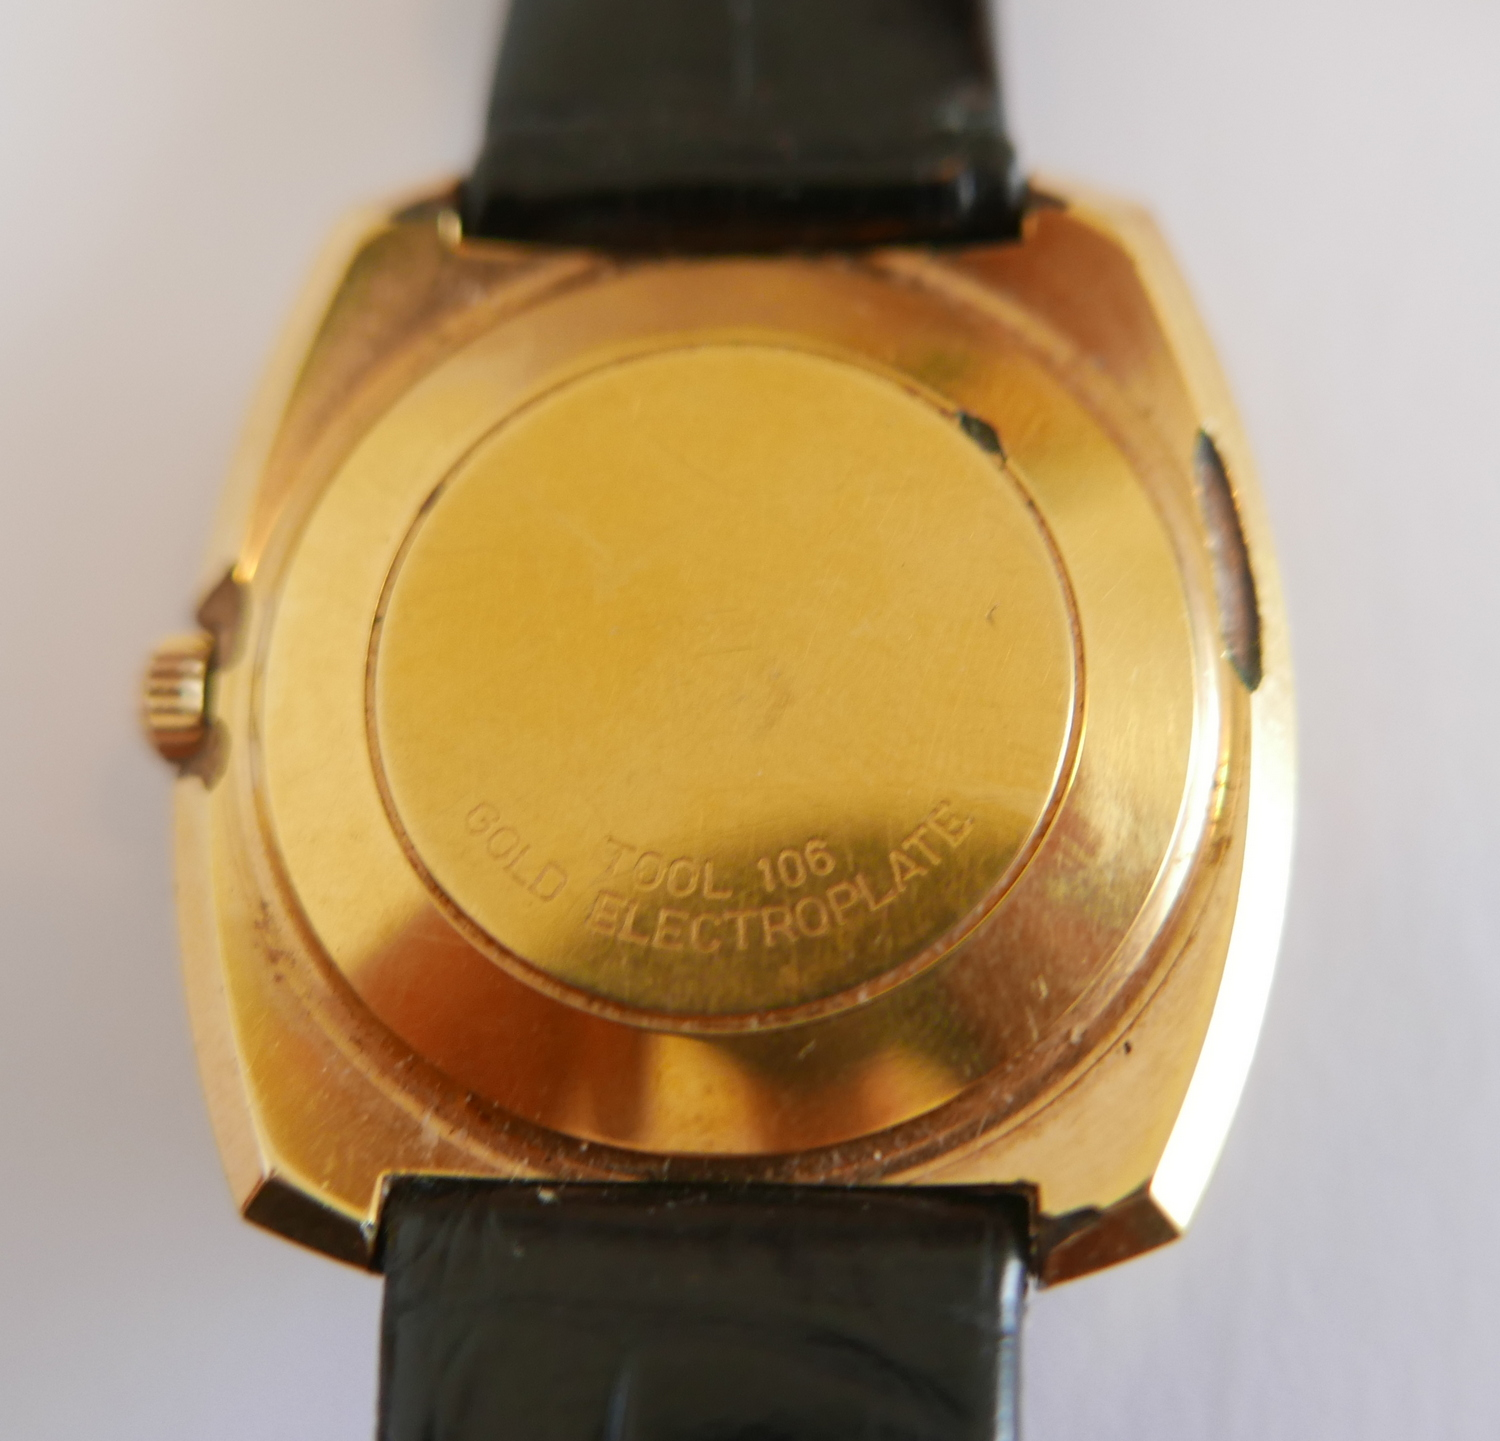 Vintage Omega Automatic Gold Plated De Ville Gents Wristwatch. - Image 3 of 3